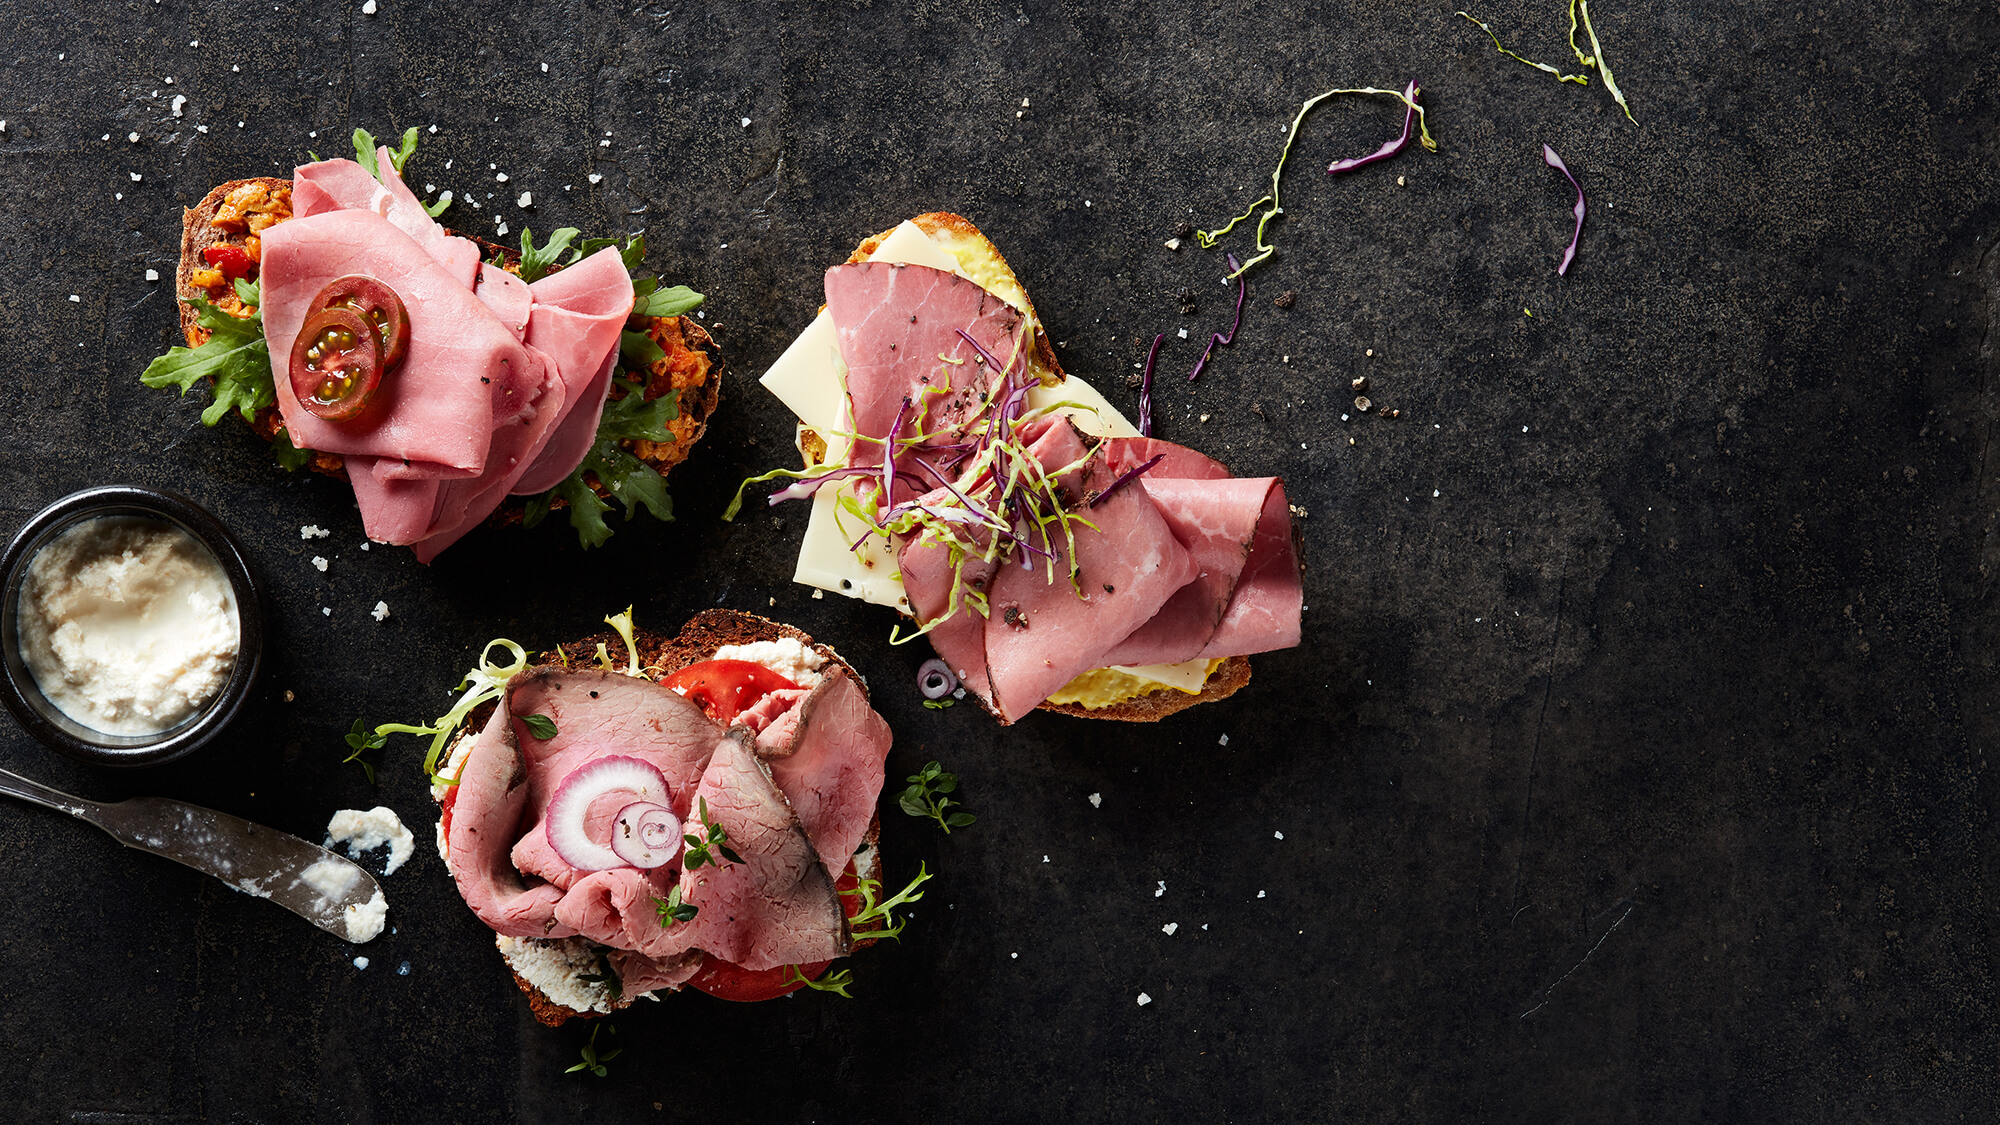 Three gourmet deli meat sandwiches made from Columbus Corned Beef, Roast Beef, and Pastrami with horseradish sauce on the side